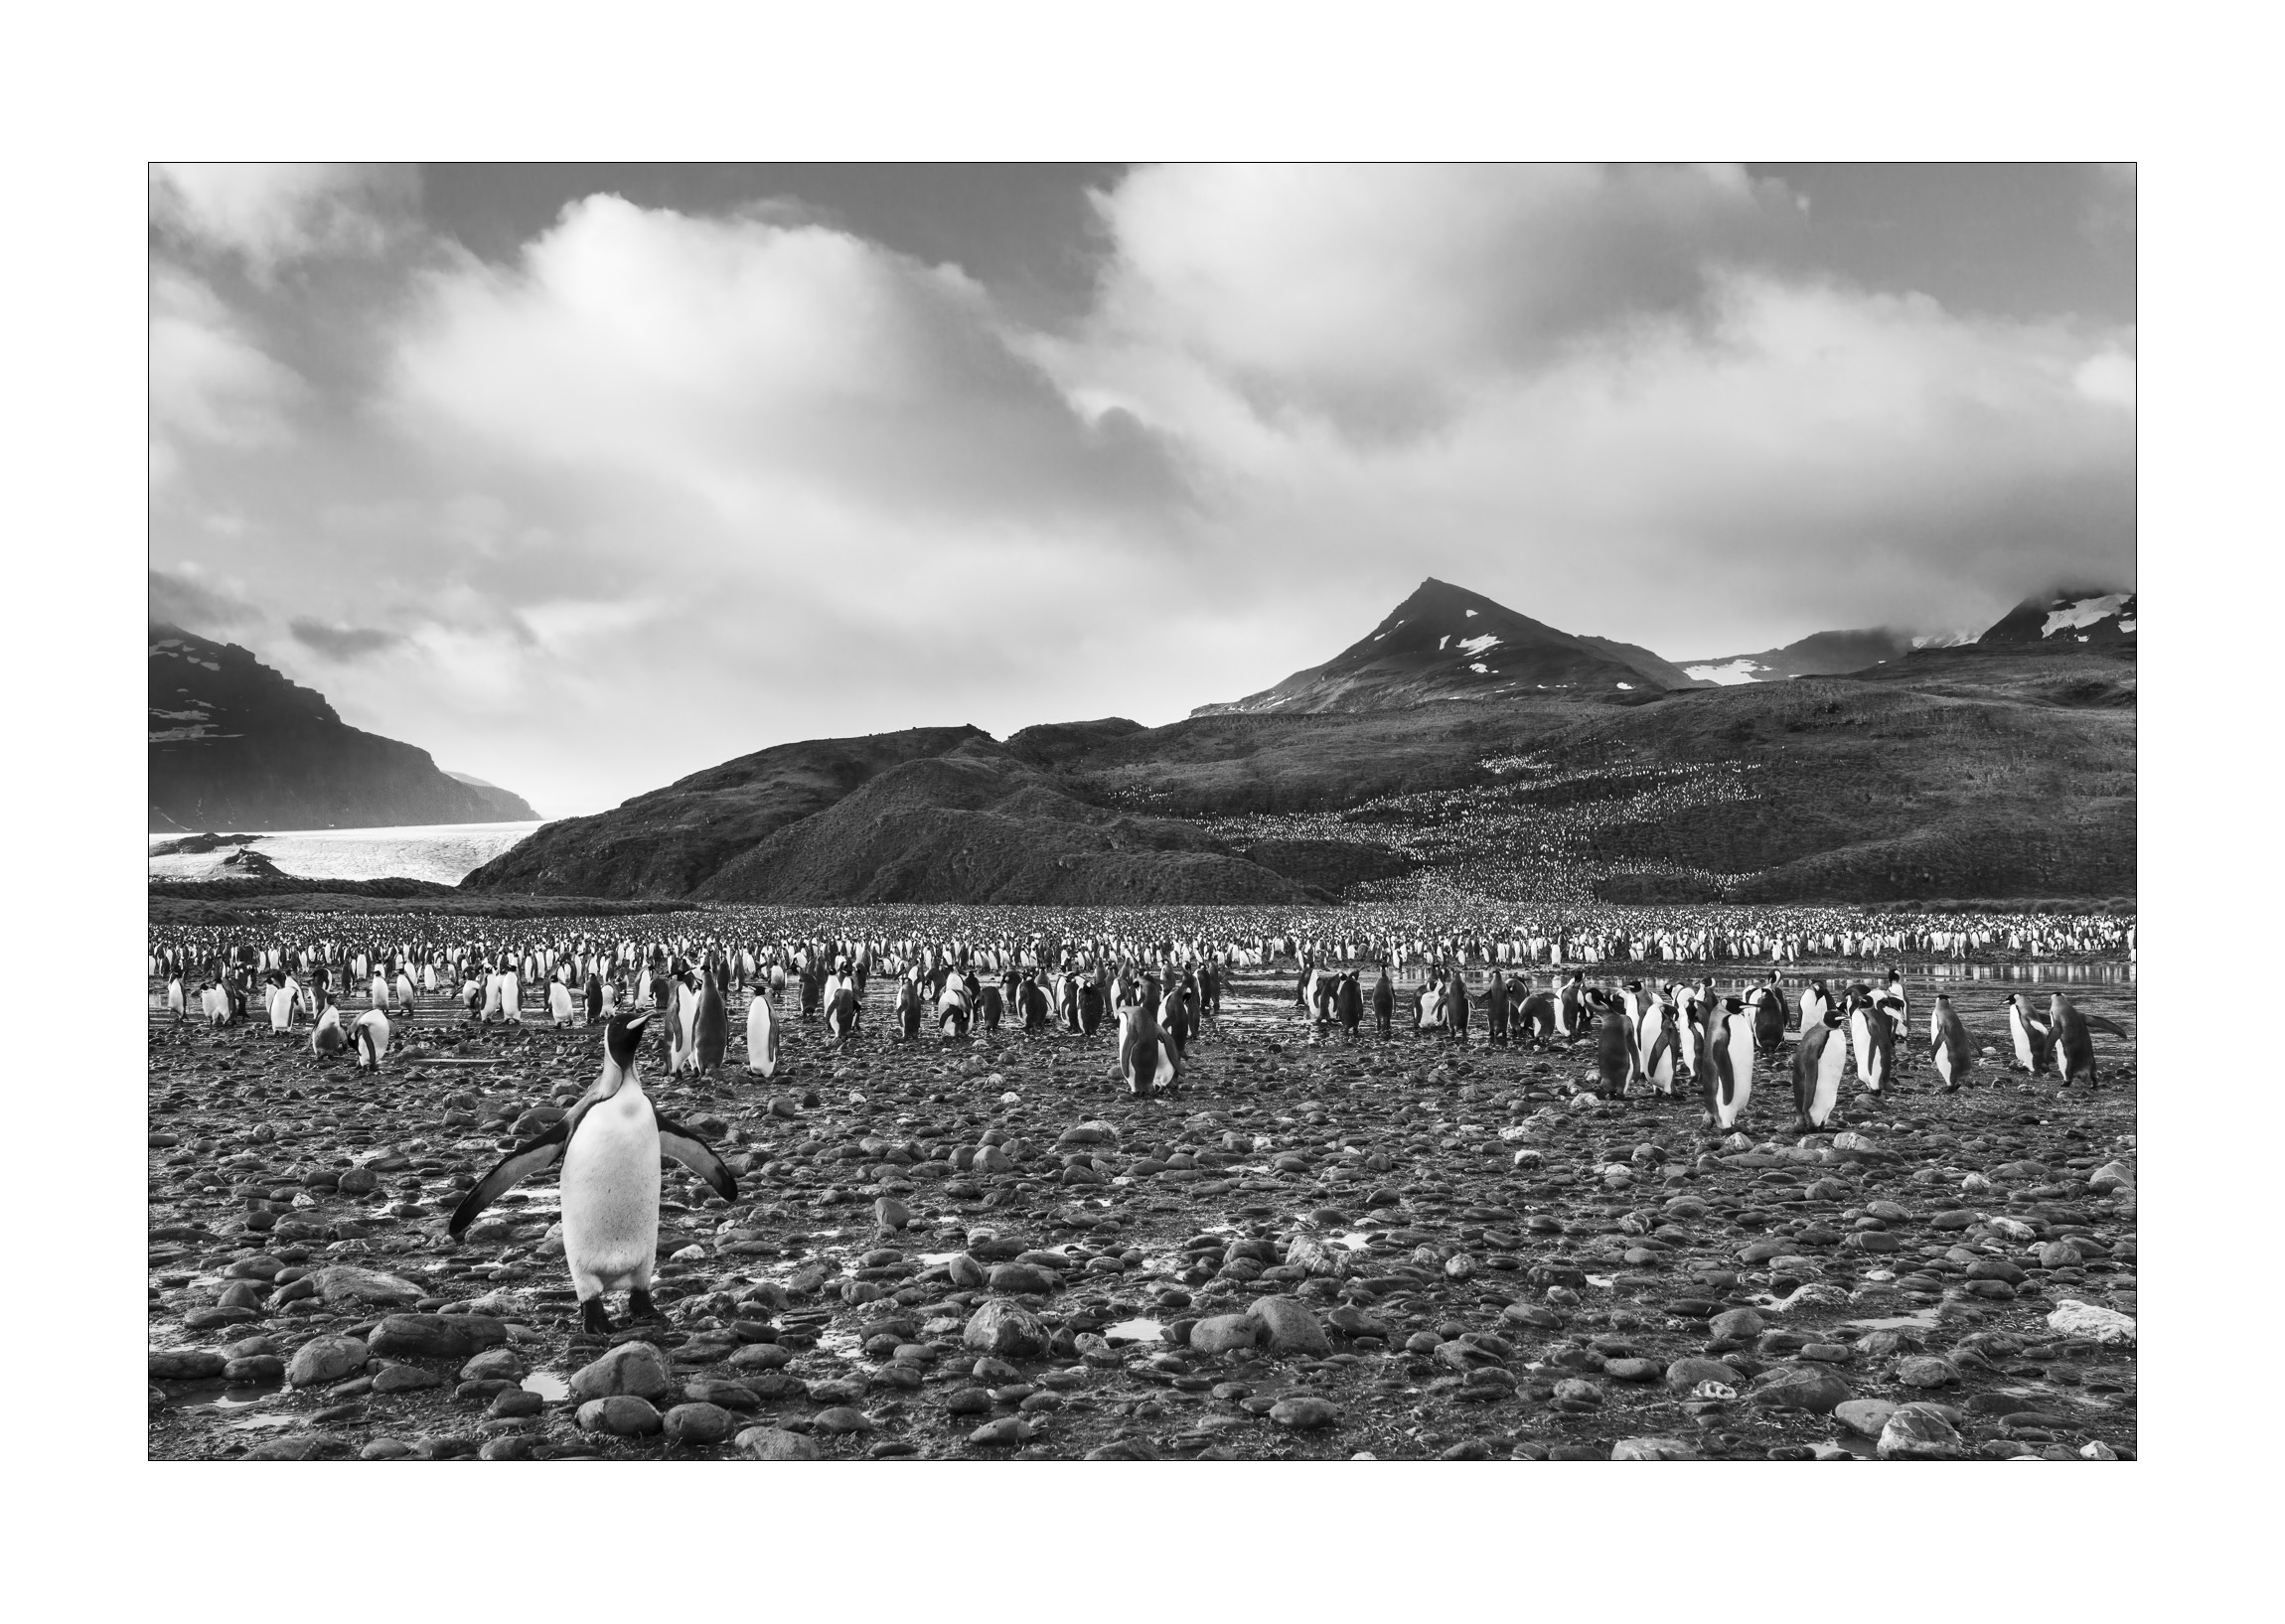 King penguins  (Aptenodytes patagonicus)  - Salisbury Plain, South Georgia  The feeling of being among hundreds of thousands of penguins is an experience that will remain with me forever. The penguins, individually small yet collectively immense, balance the accompanying landscape of mountains, glaciers and an incoming storm. Penguins are naturally inquisitive. As the one in the foreground approached and separated itself from the crowd, I knew instinctively that it would complement the shot.